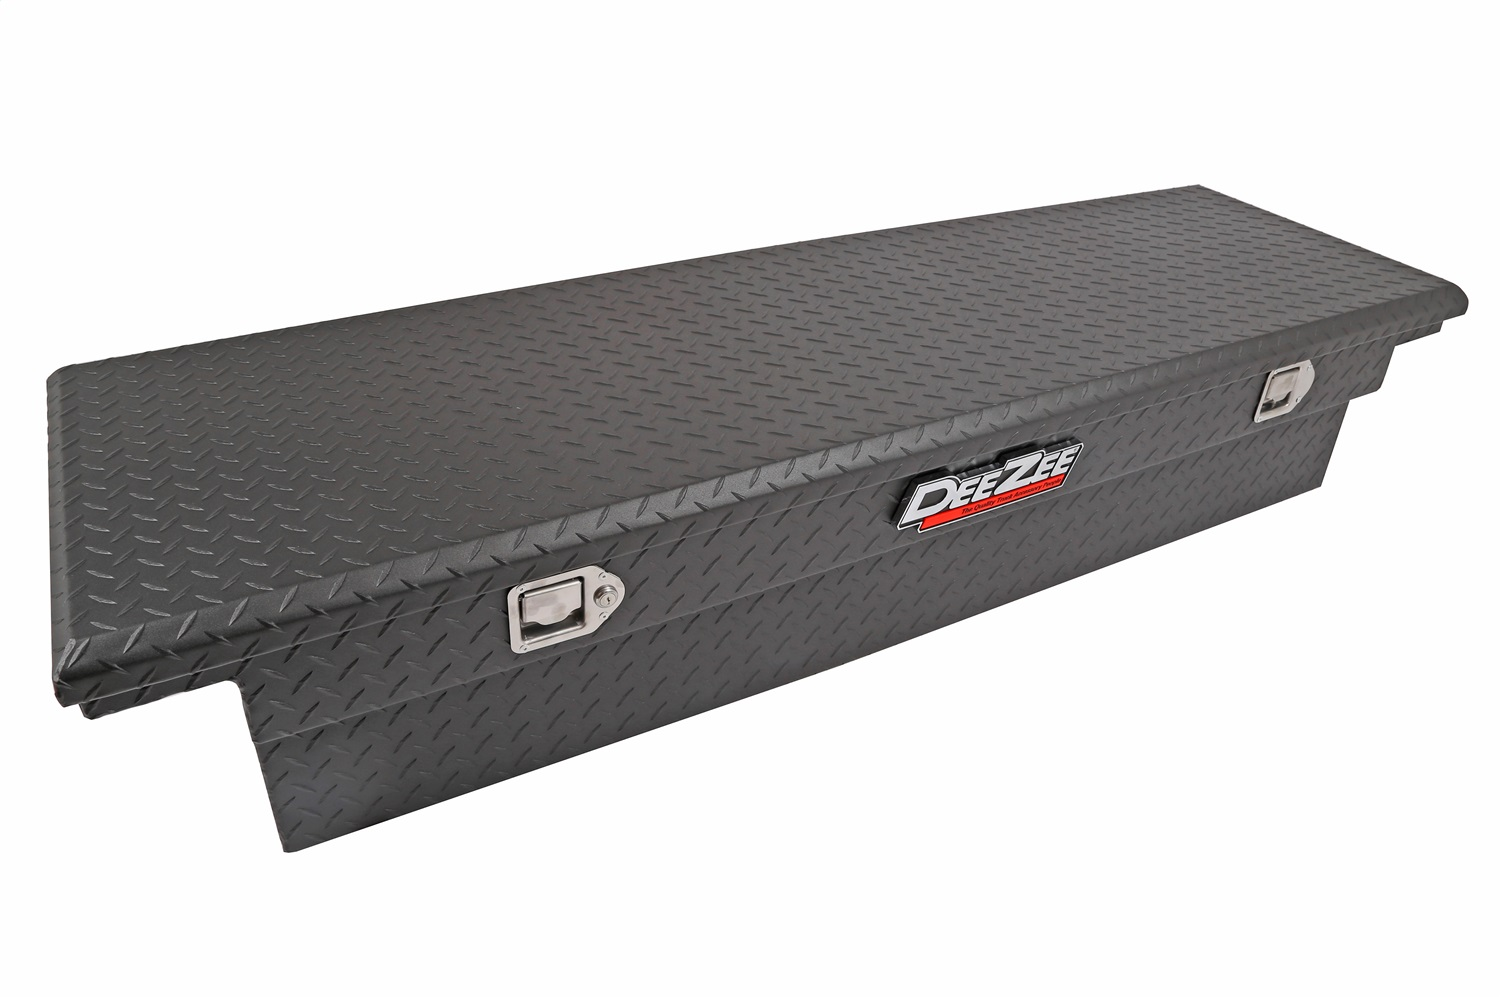 Dee Zee DZ8170LTB Red Label Single Lid Crossover Tool Box